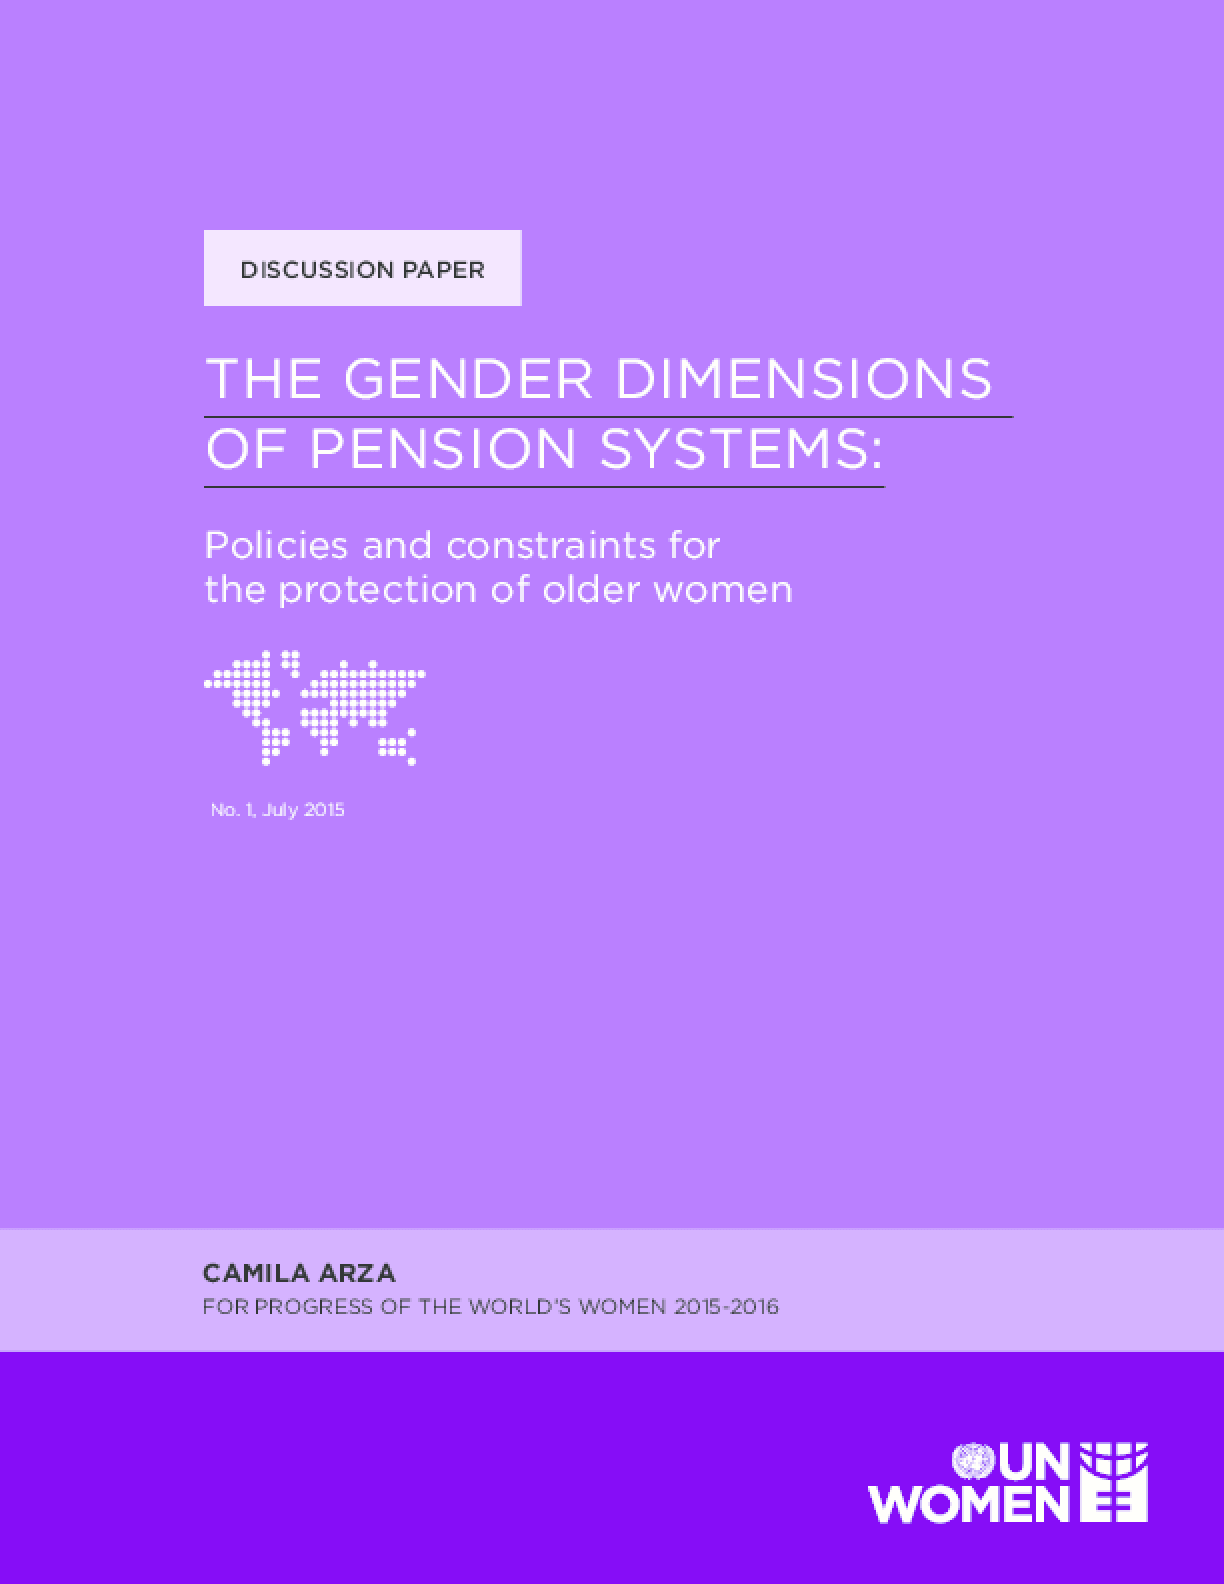 The Gender Dimensions of Pension Systems: Policies and Constraints for the Protection of Older Women